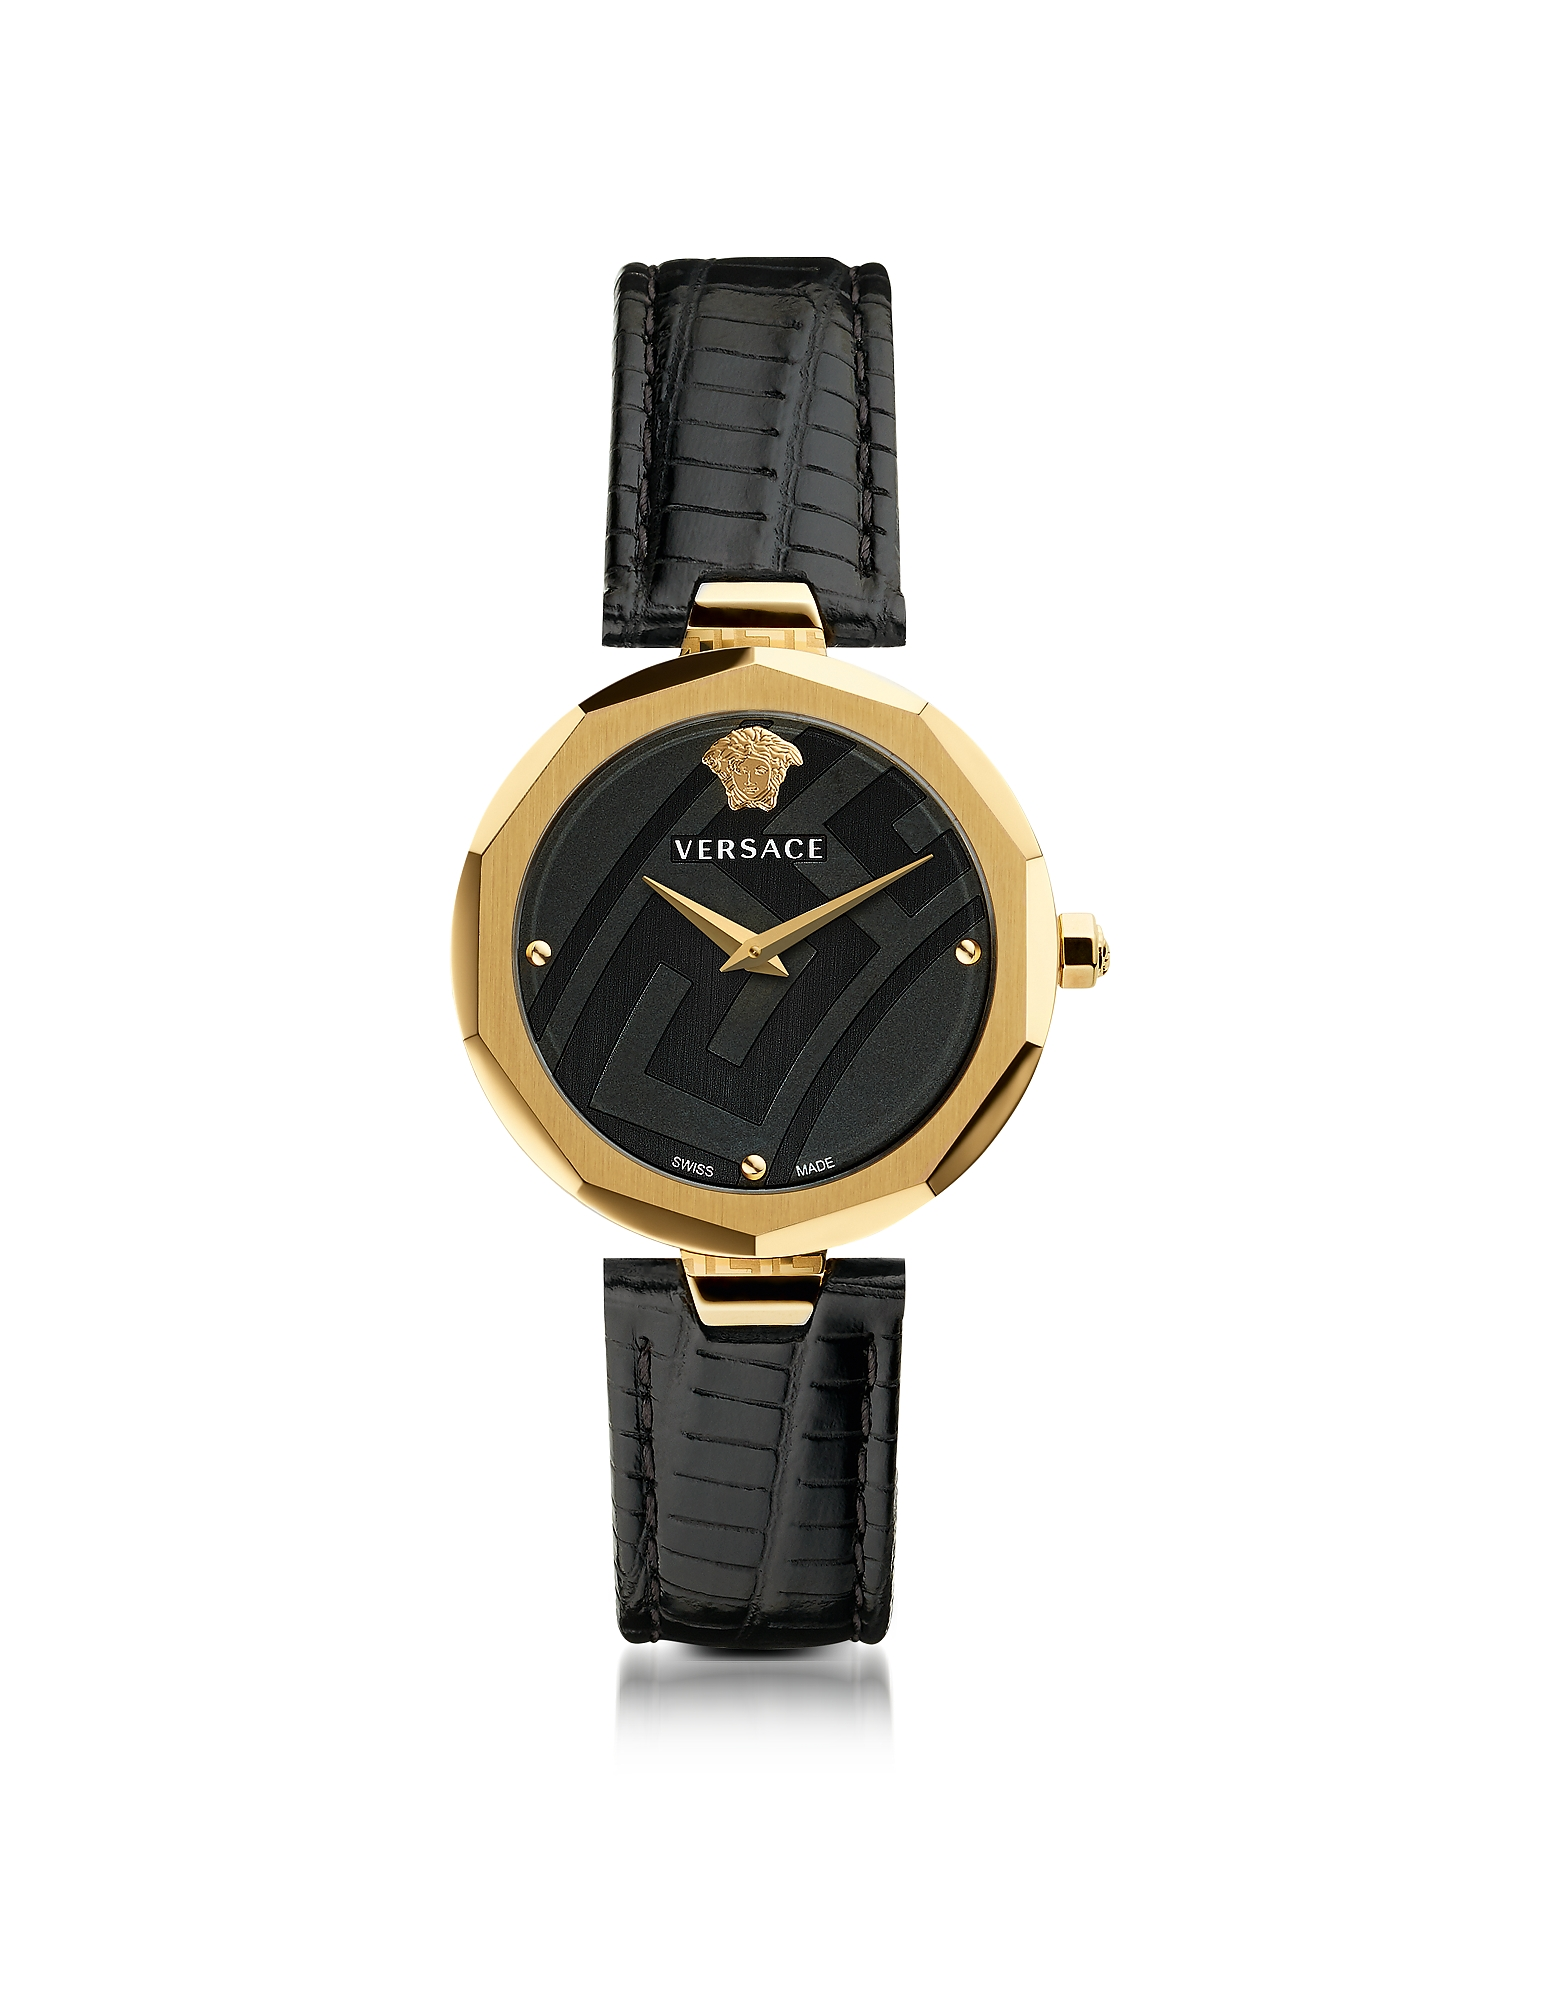 Versace Women's Watches, Idyia Decagonal Black and Gold Women's Watch with Greek Engraving